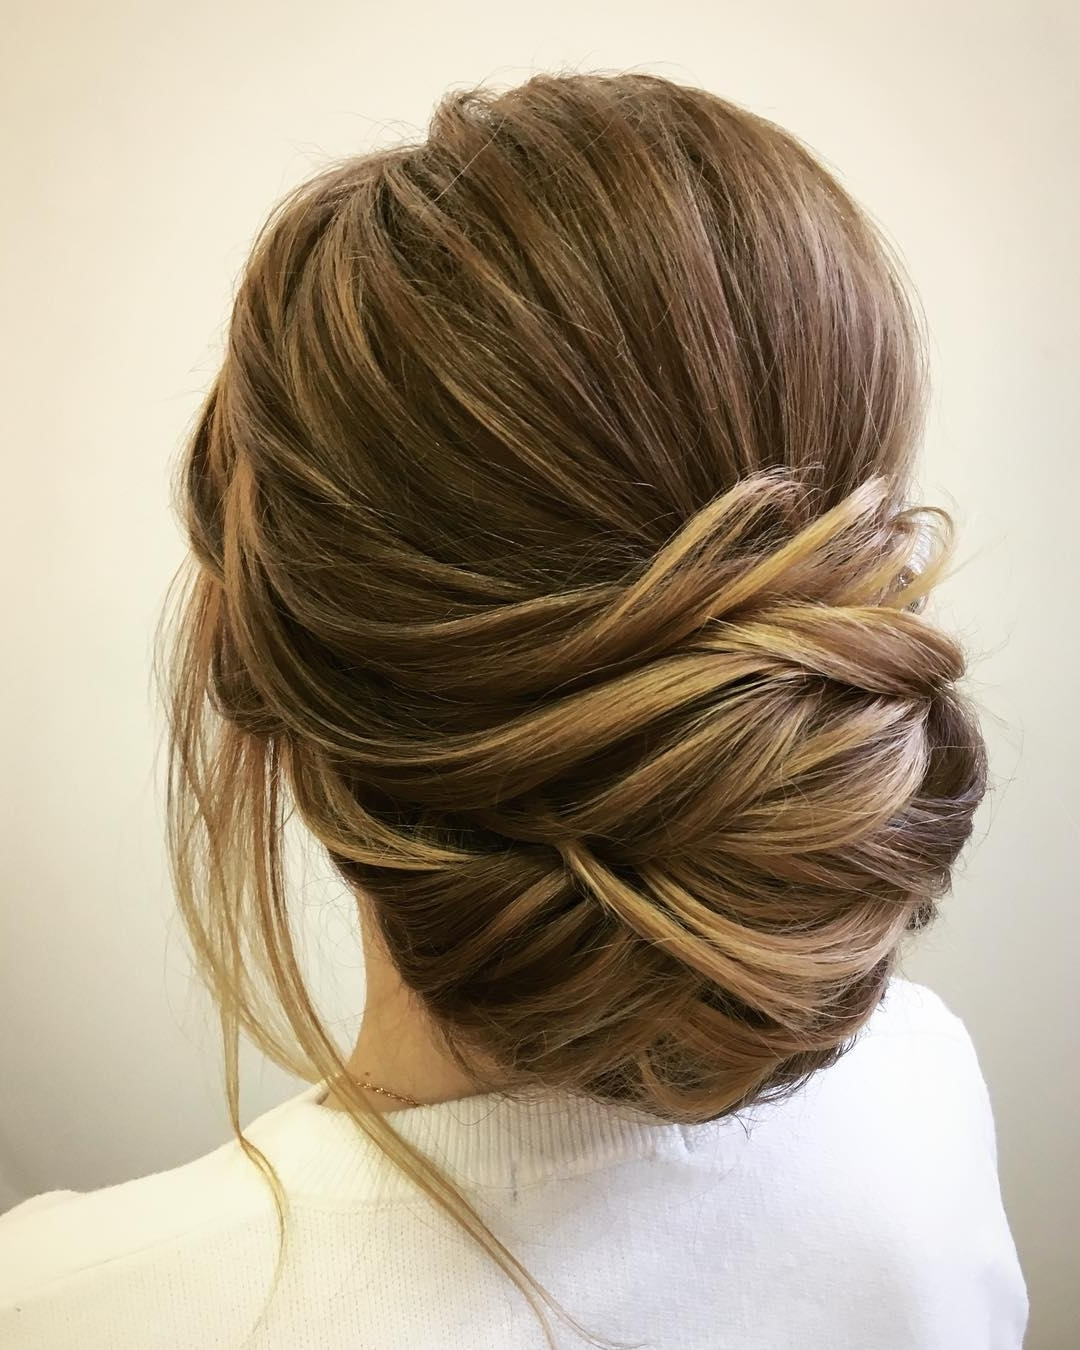 Easy And Pretty Chignon Buns Hairstyles You'll Love To Try For Chignon Updo Hairstyles (View 10 of 15)